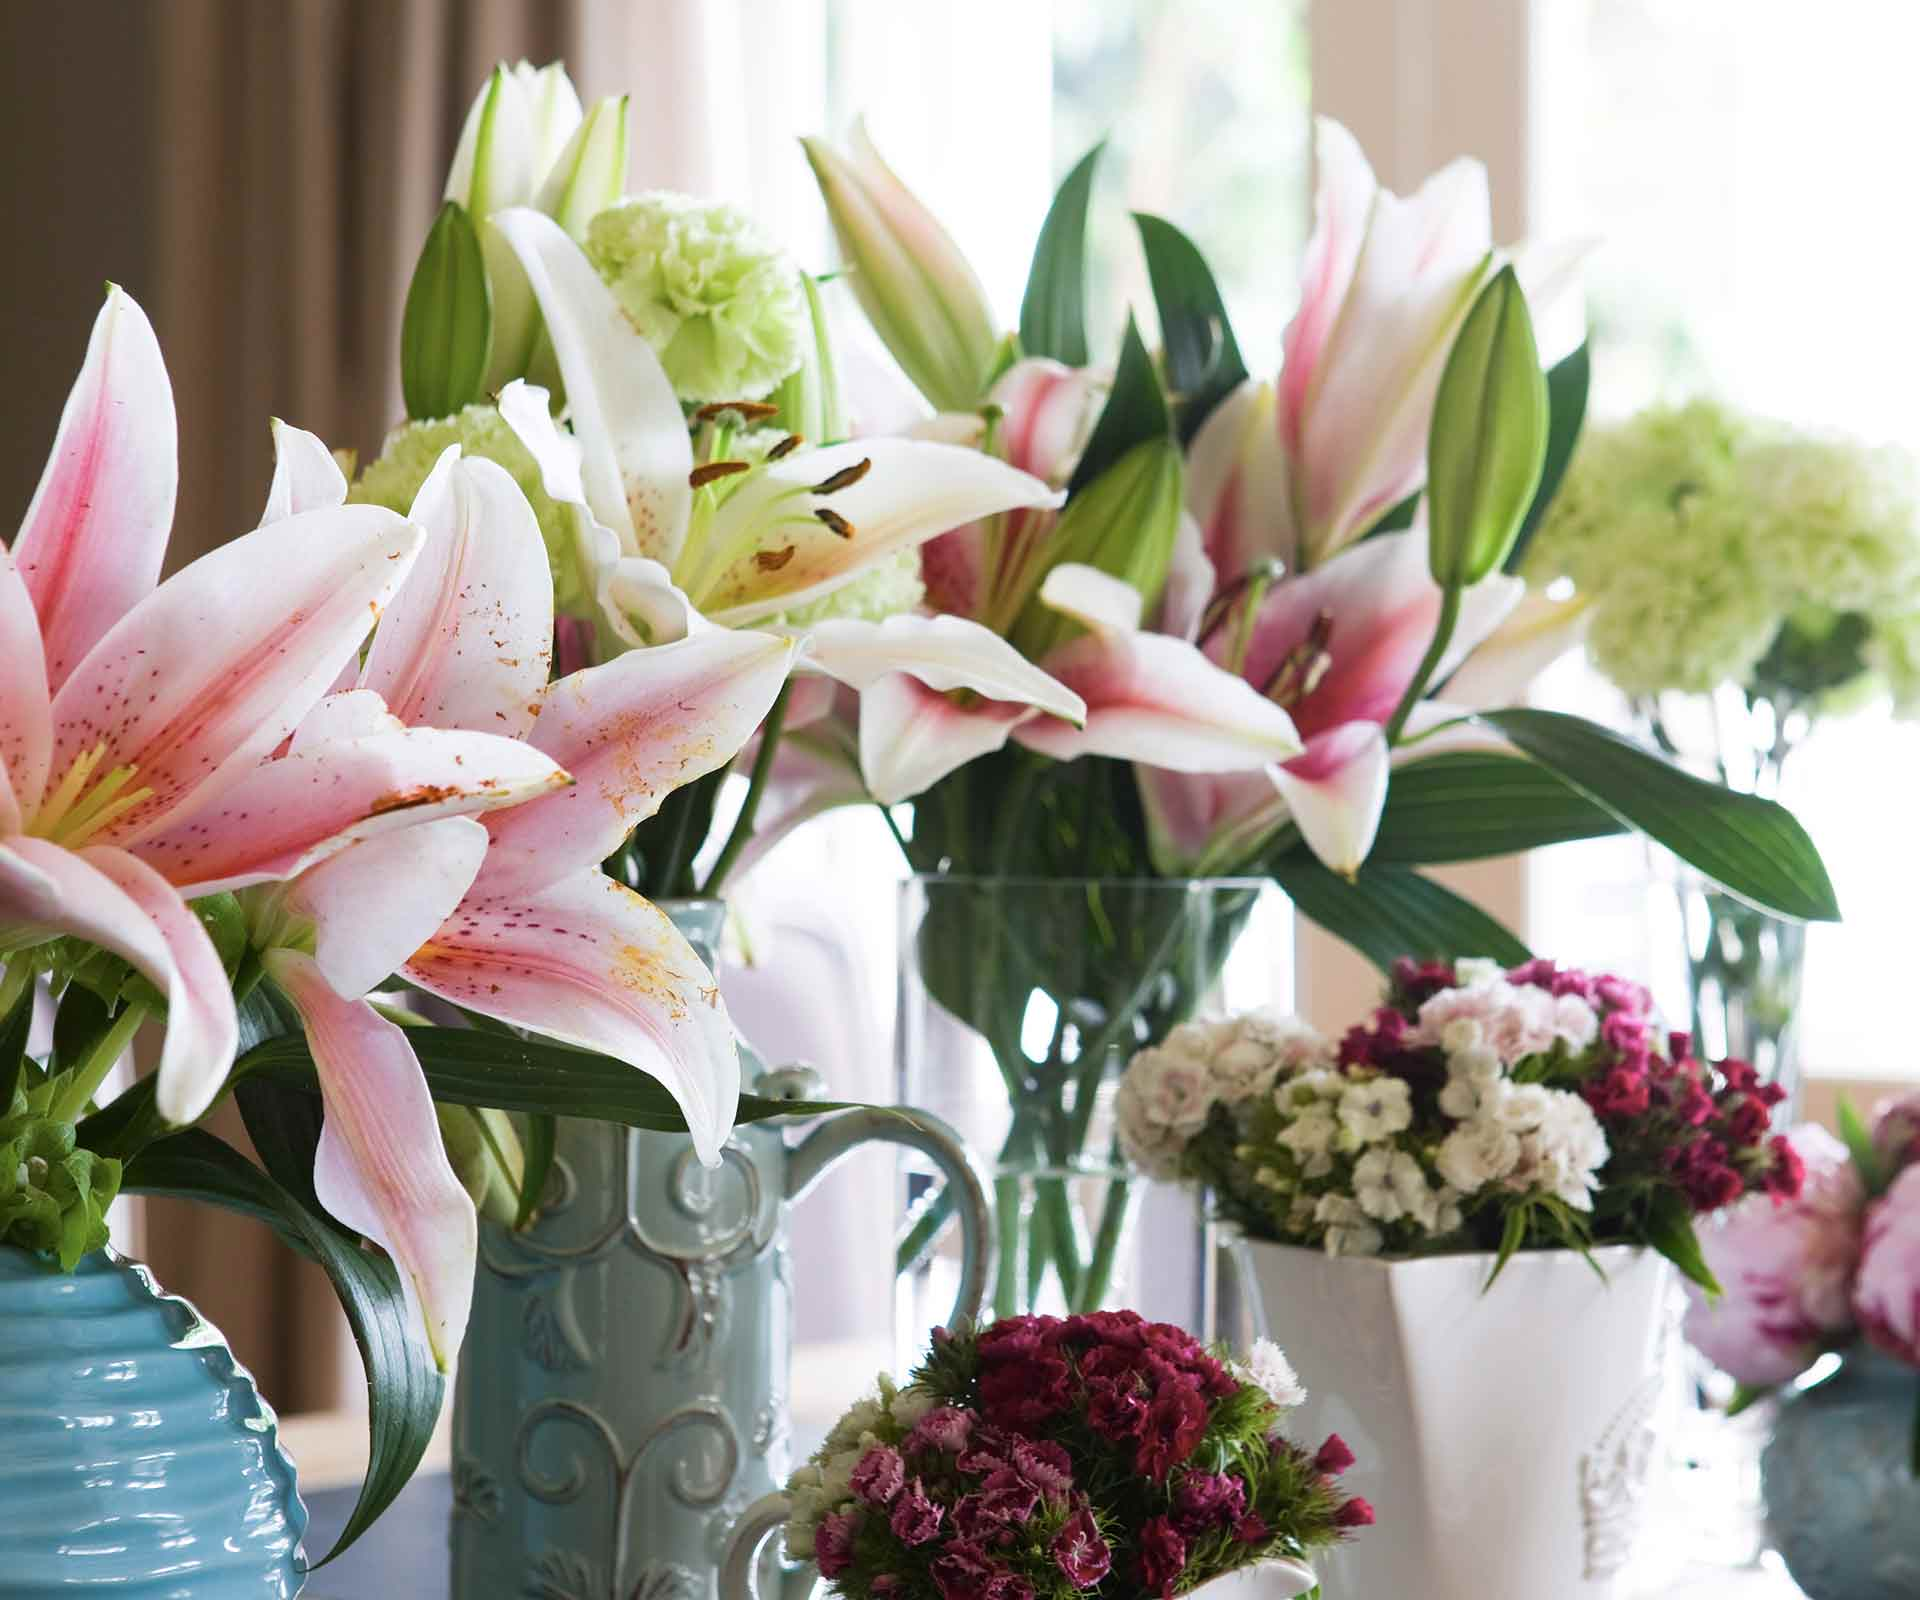 How to grow lilies in gardens and pots